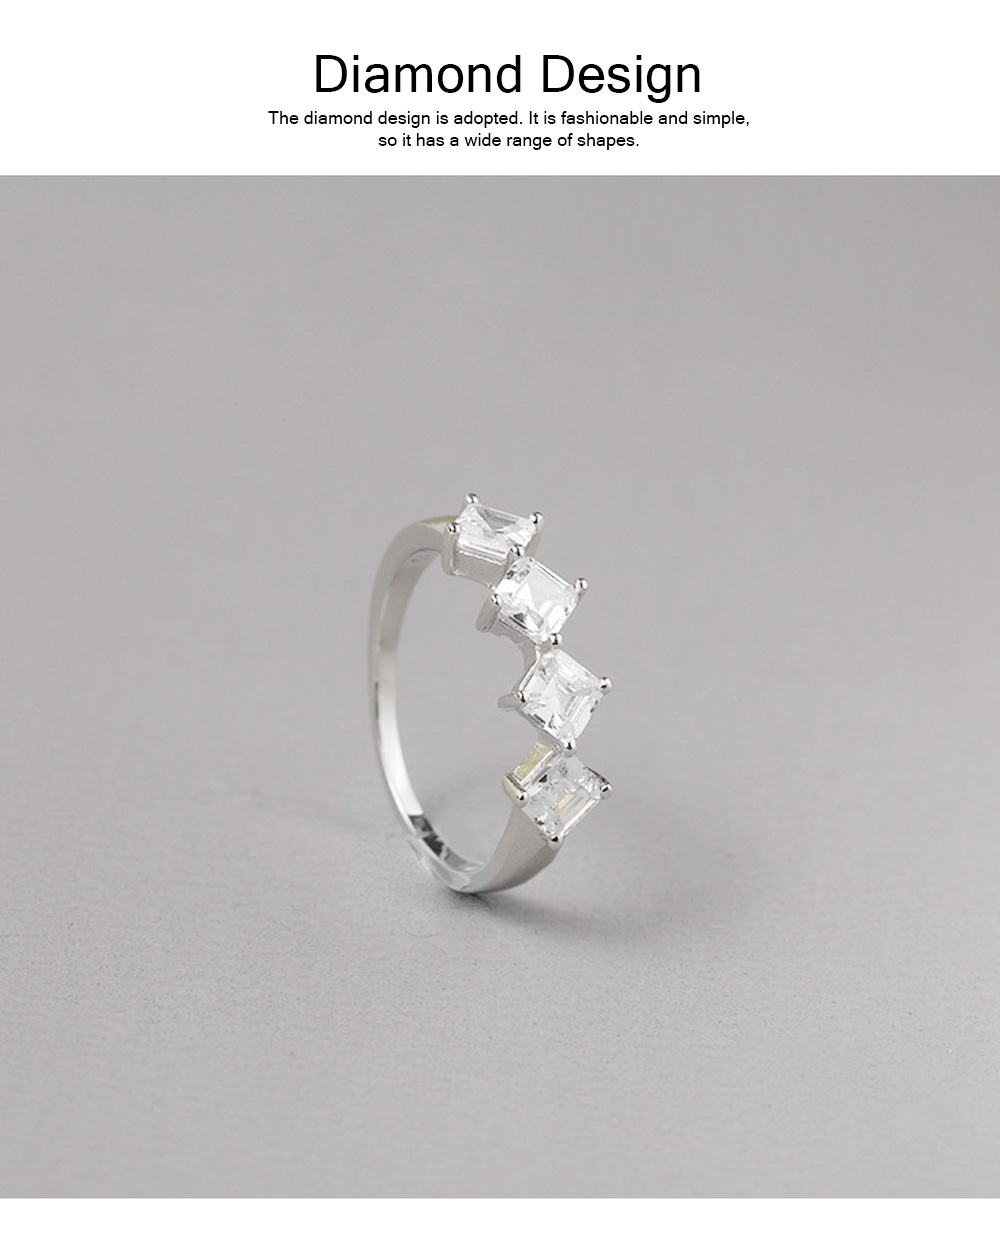 Delicate Creative Diamond Ring, Japanese and Korean Popular New S925 Zircon Ring with Simple Character 1